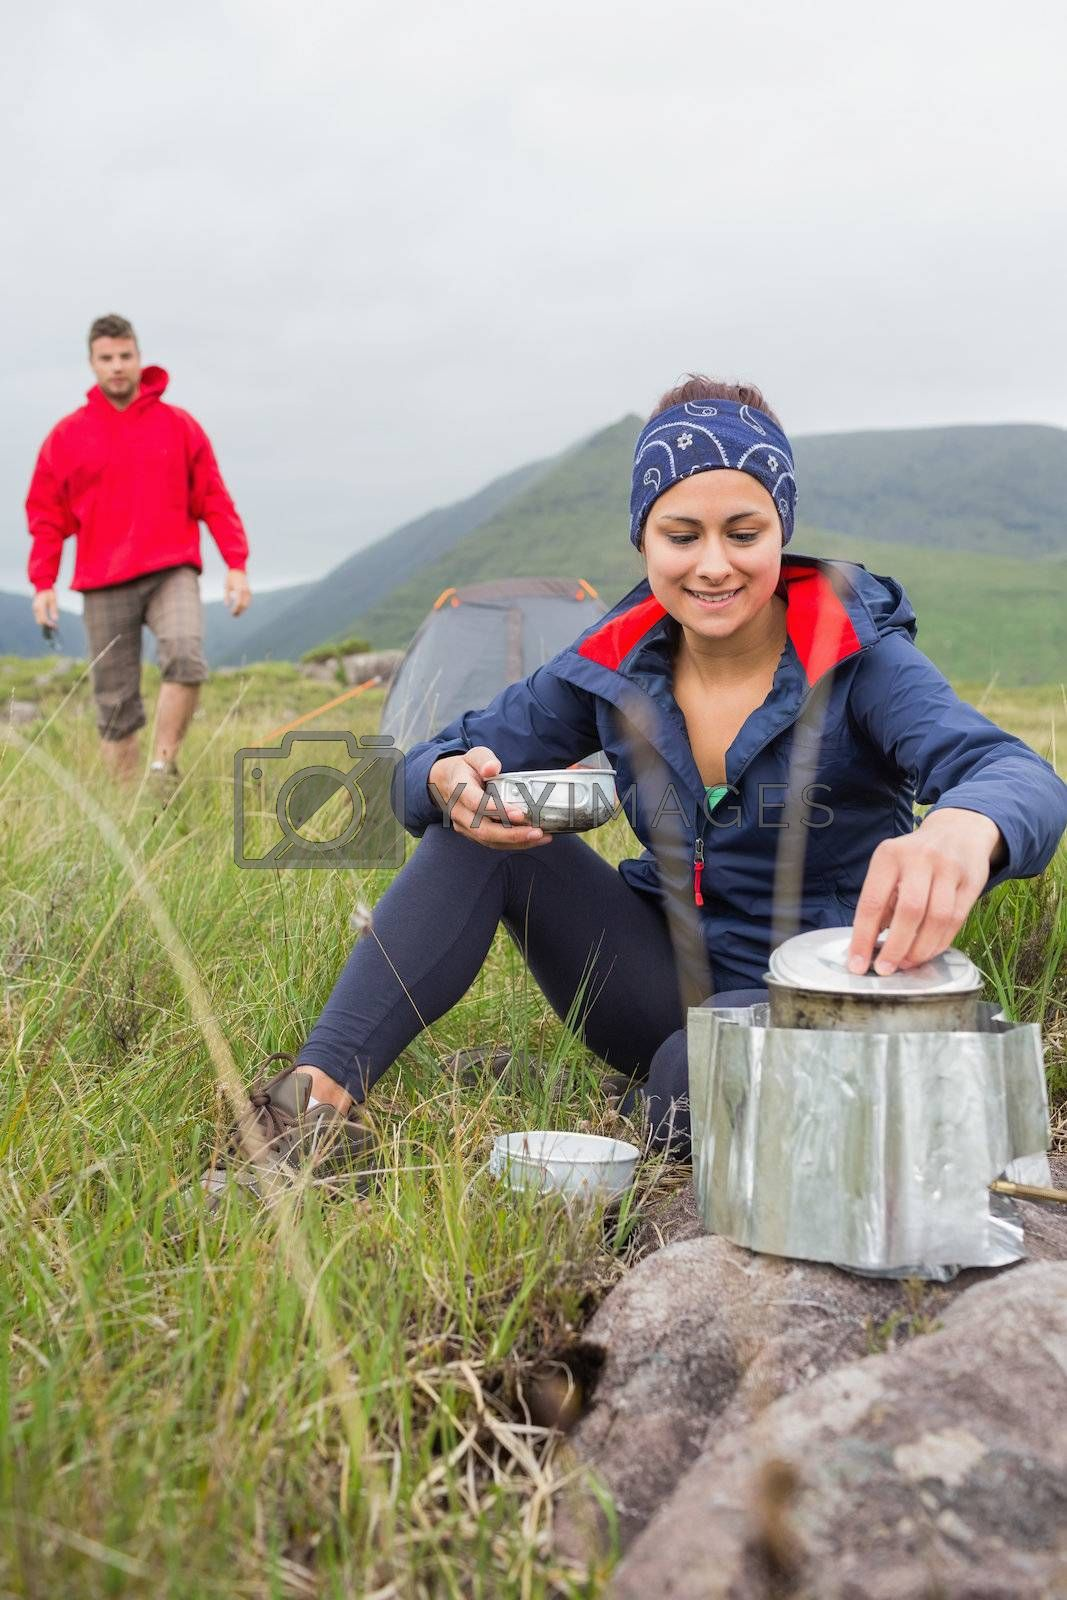 Woman cooking outside on camping trip with boyfriend walking by Wavebreakmedia